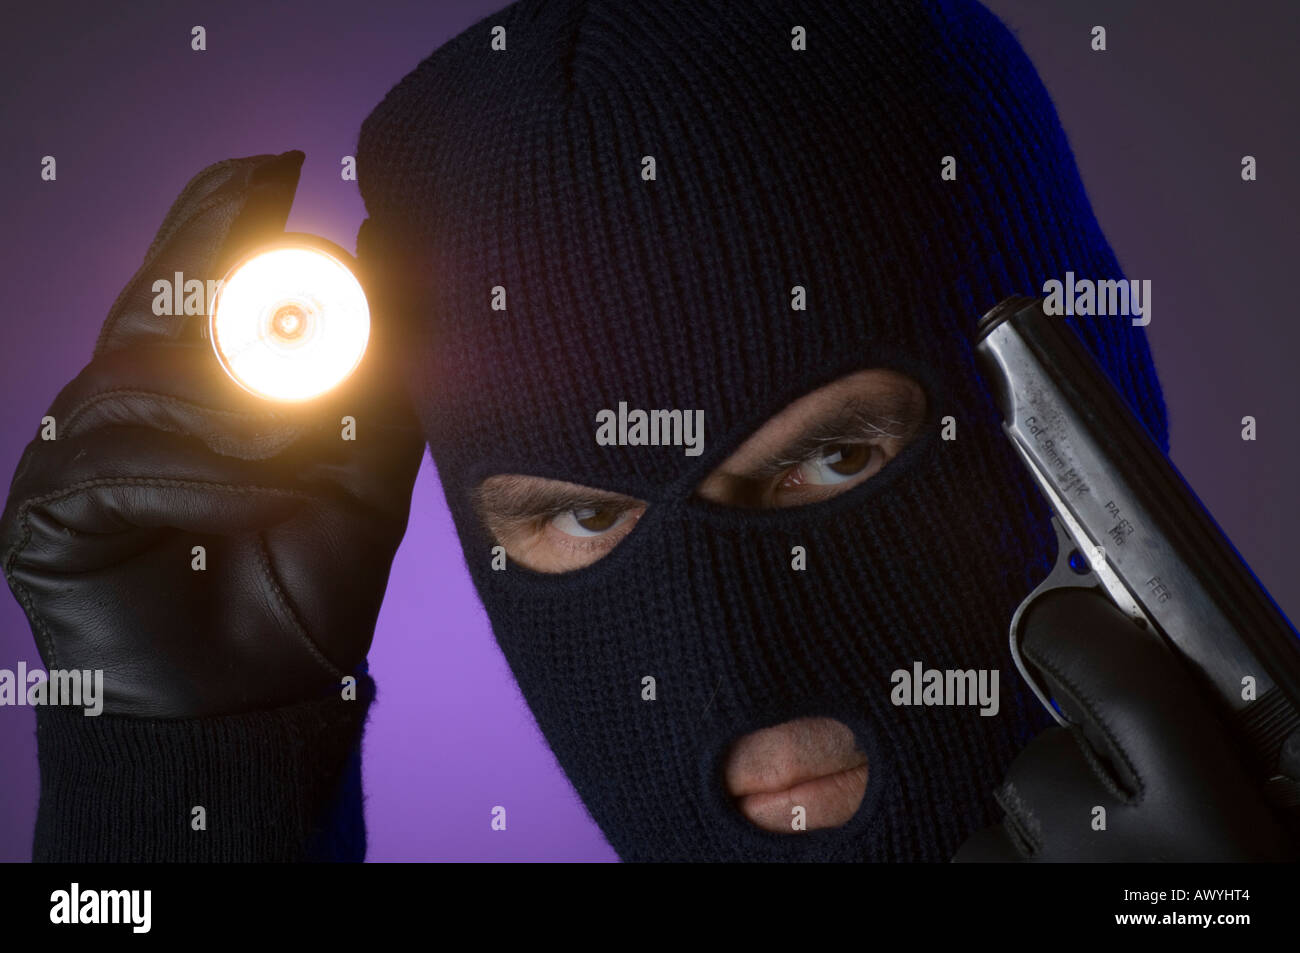 man with flashlight wearing ski mask breaking into bank vault Stock ... 01489580a206